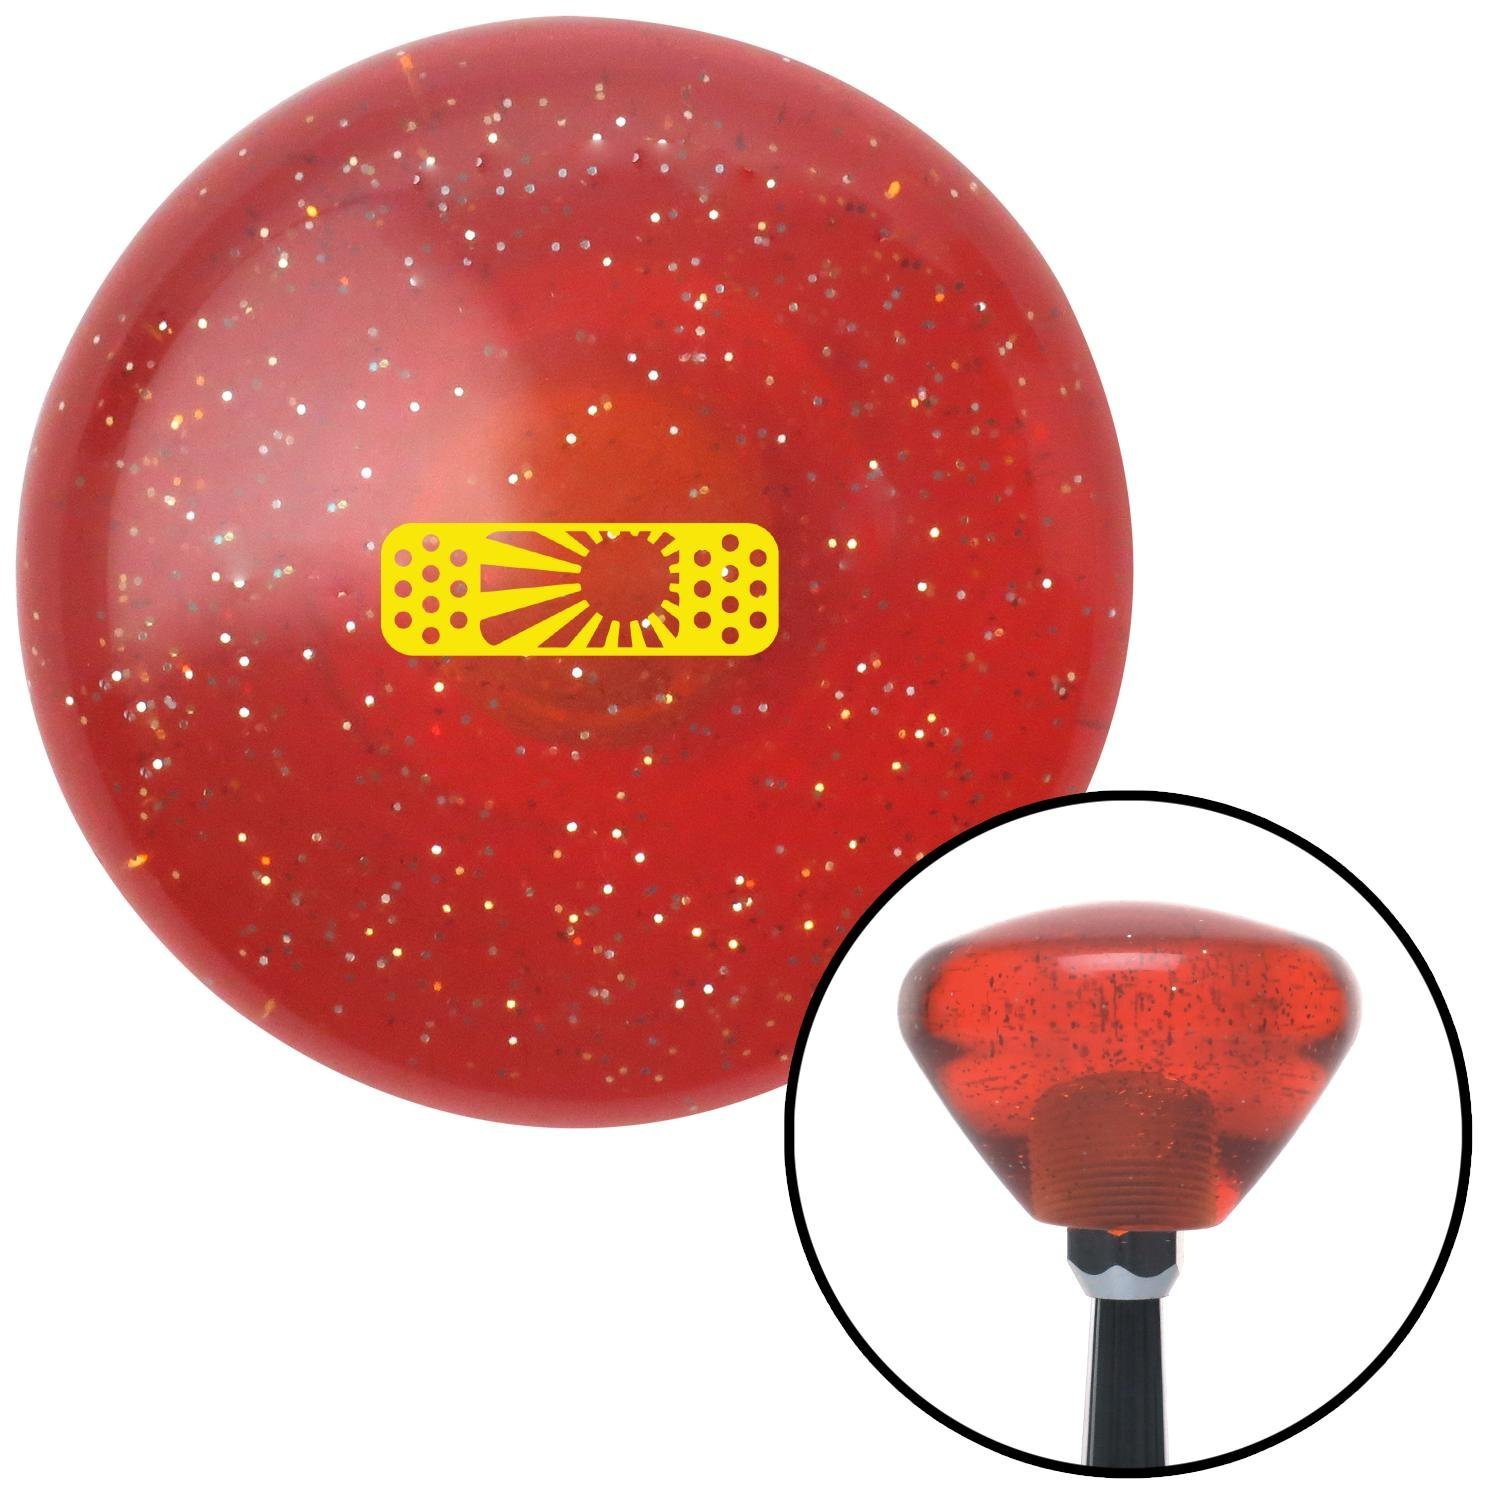 American Shifter 288613 Shift Knob Yellow JDM Band-Aid Single Orange Retro Metal Flake with M16 x 1.5 Insert